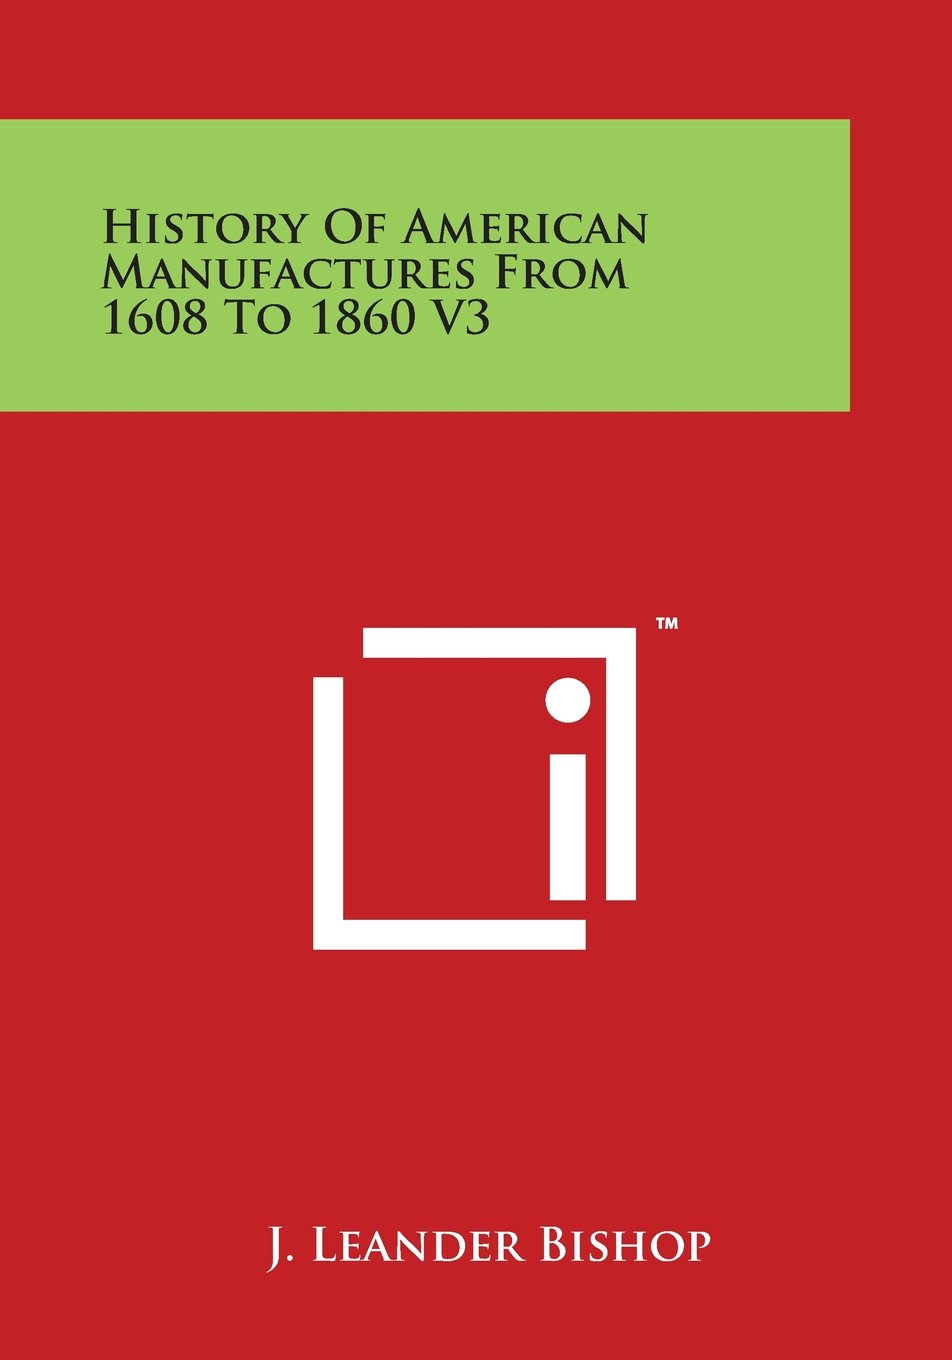 Read Online History Of American Manufactures From 1608 To 1860 V3 pdf epub